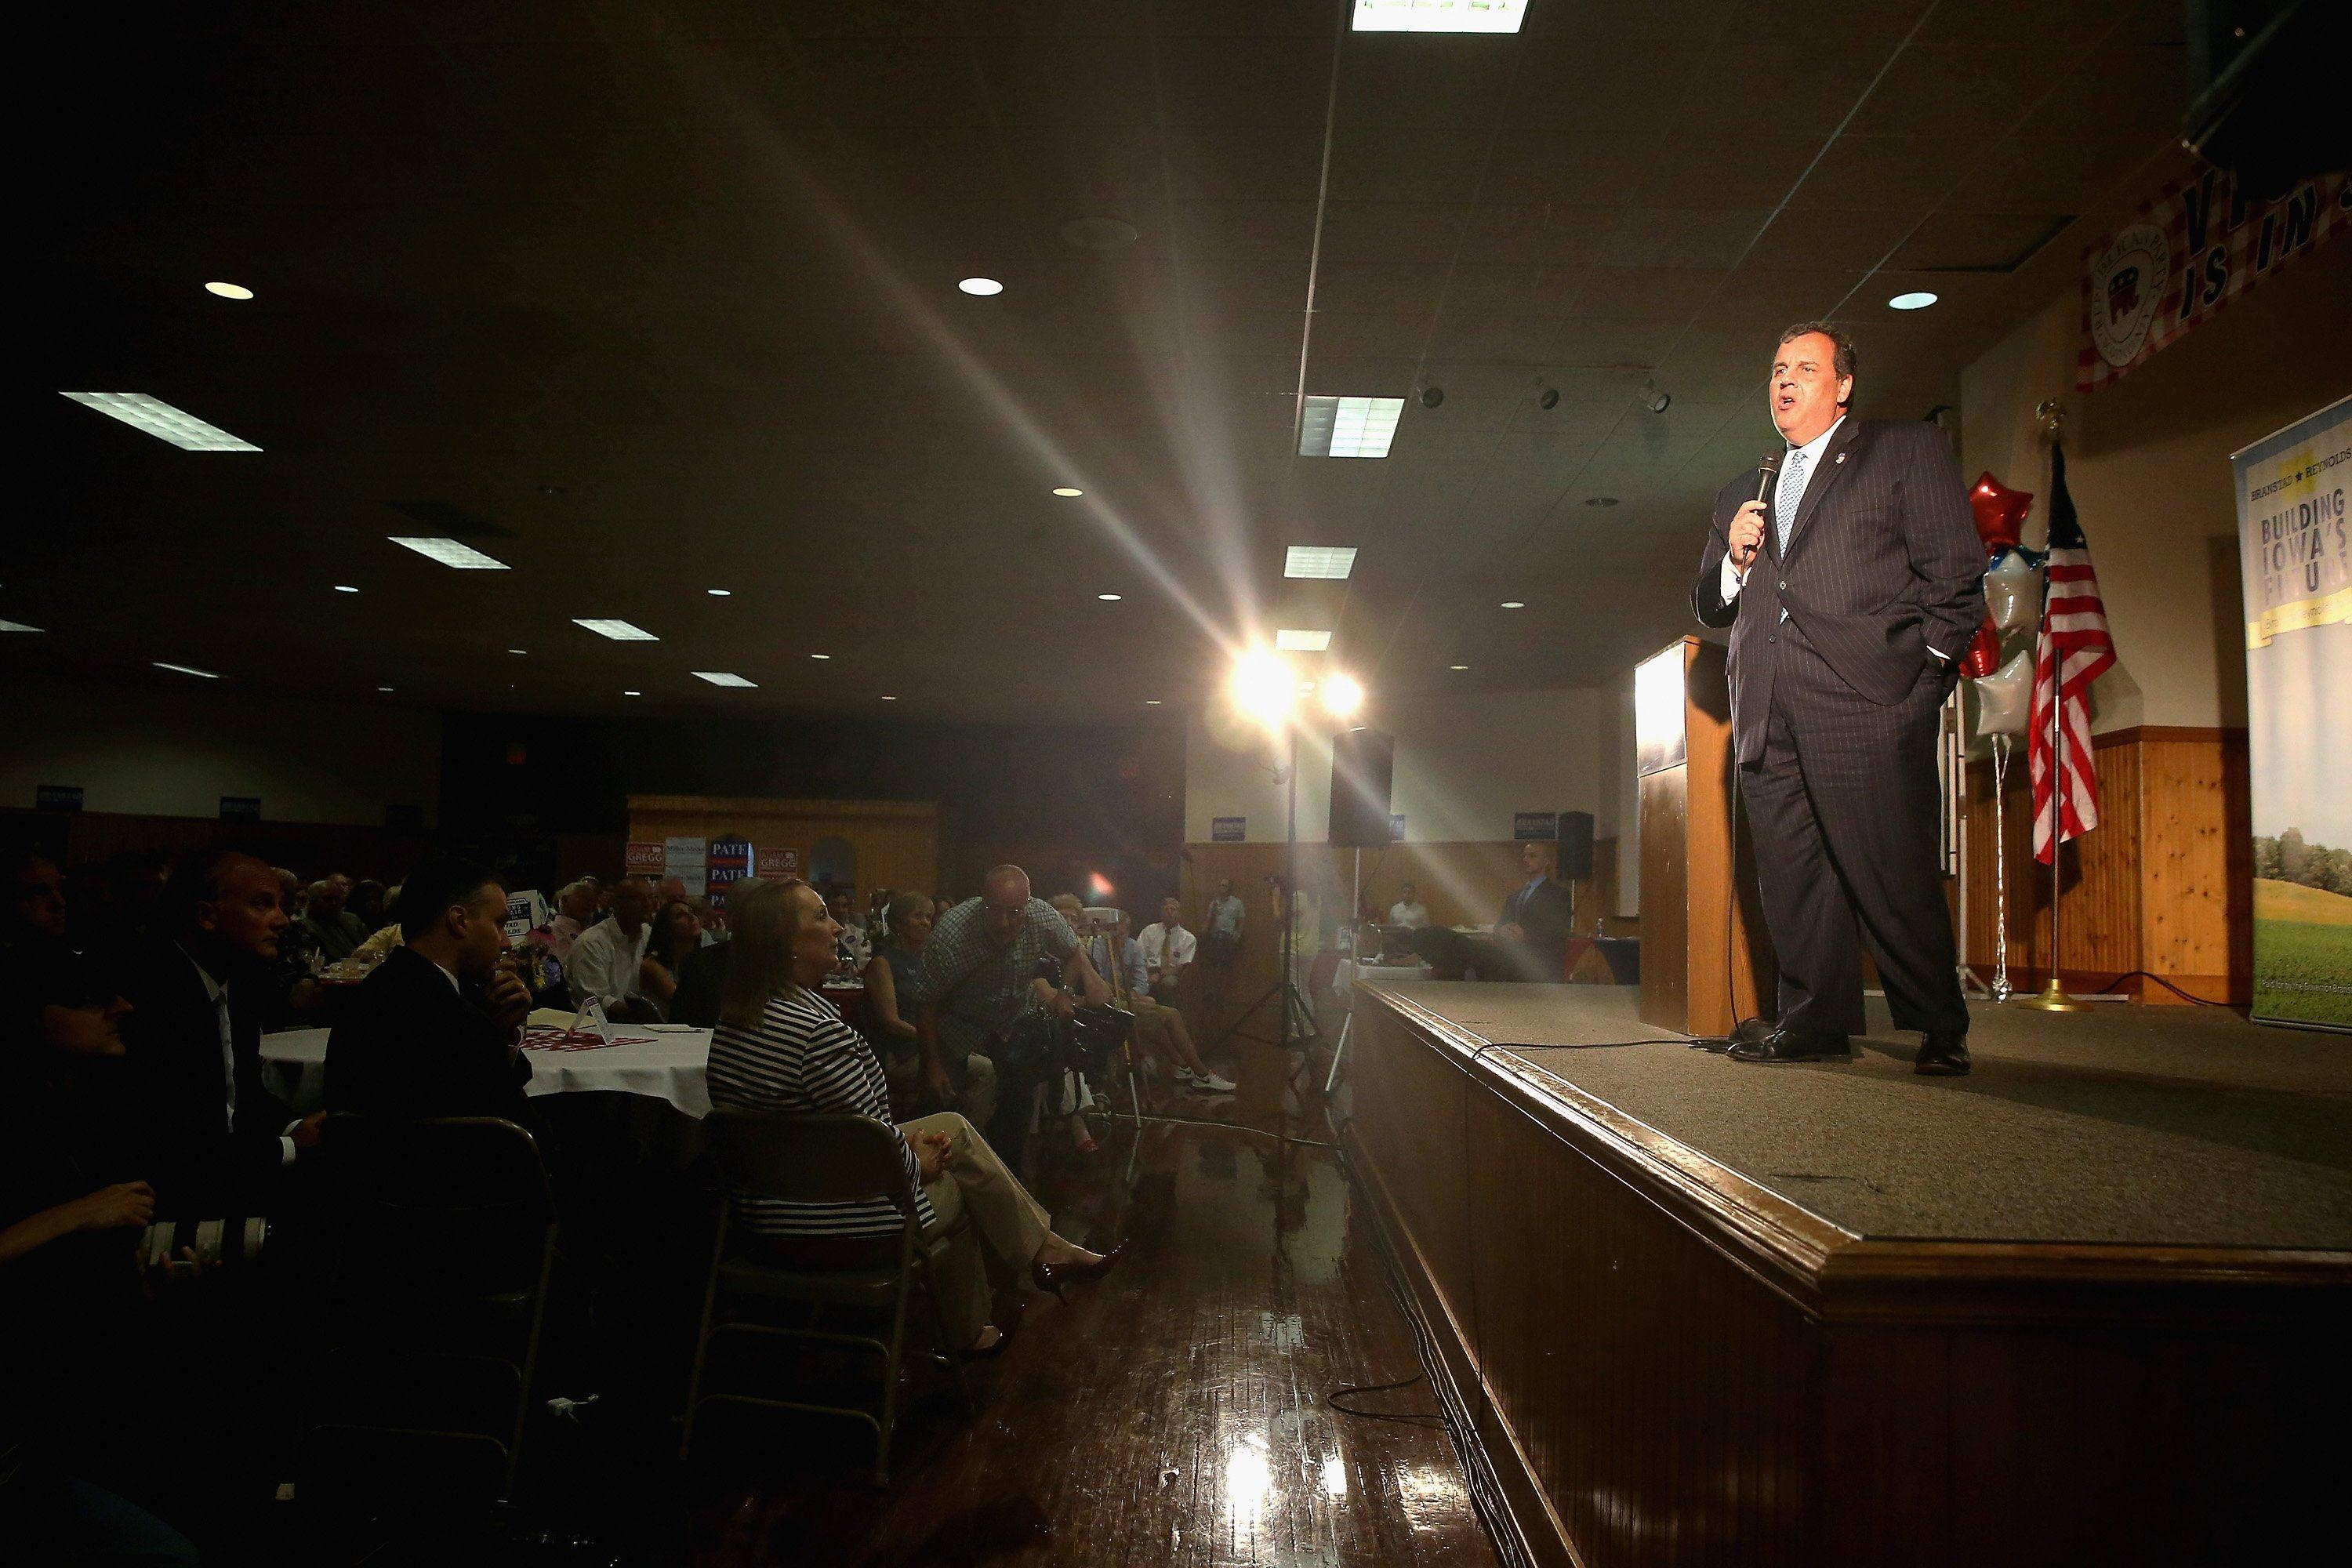 Image: NJ Gov And RGA Chairman Chris Christie Appears With Iowa's Governor At Davenport Fairgrounds